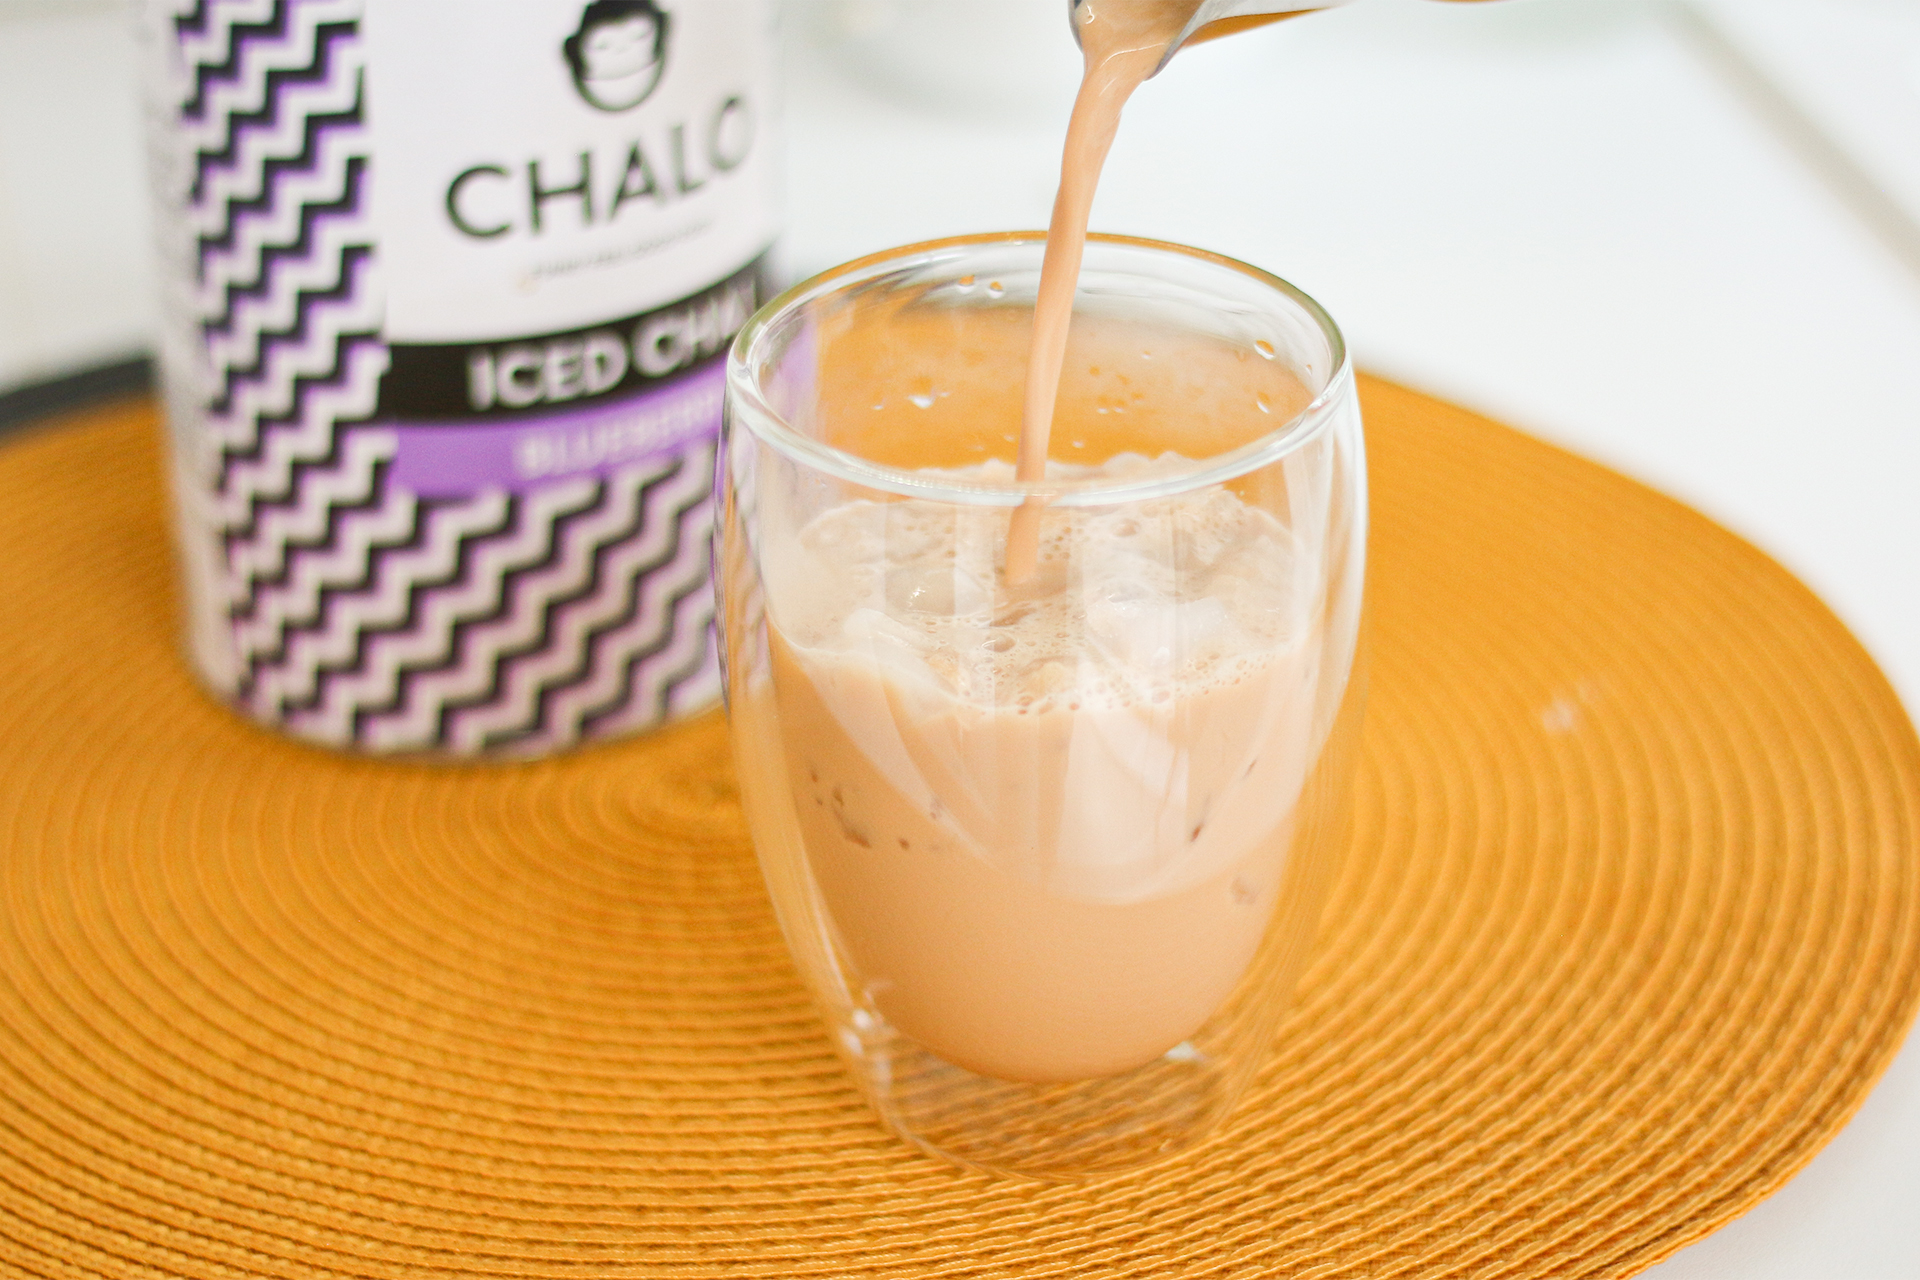 Chalo iced chai latte